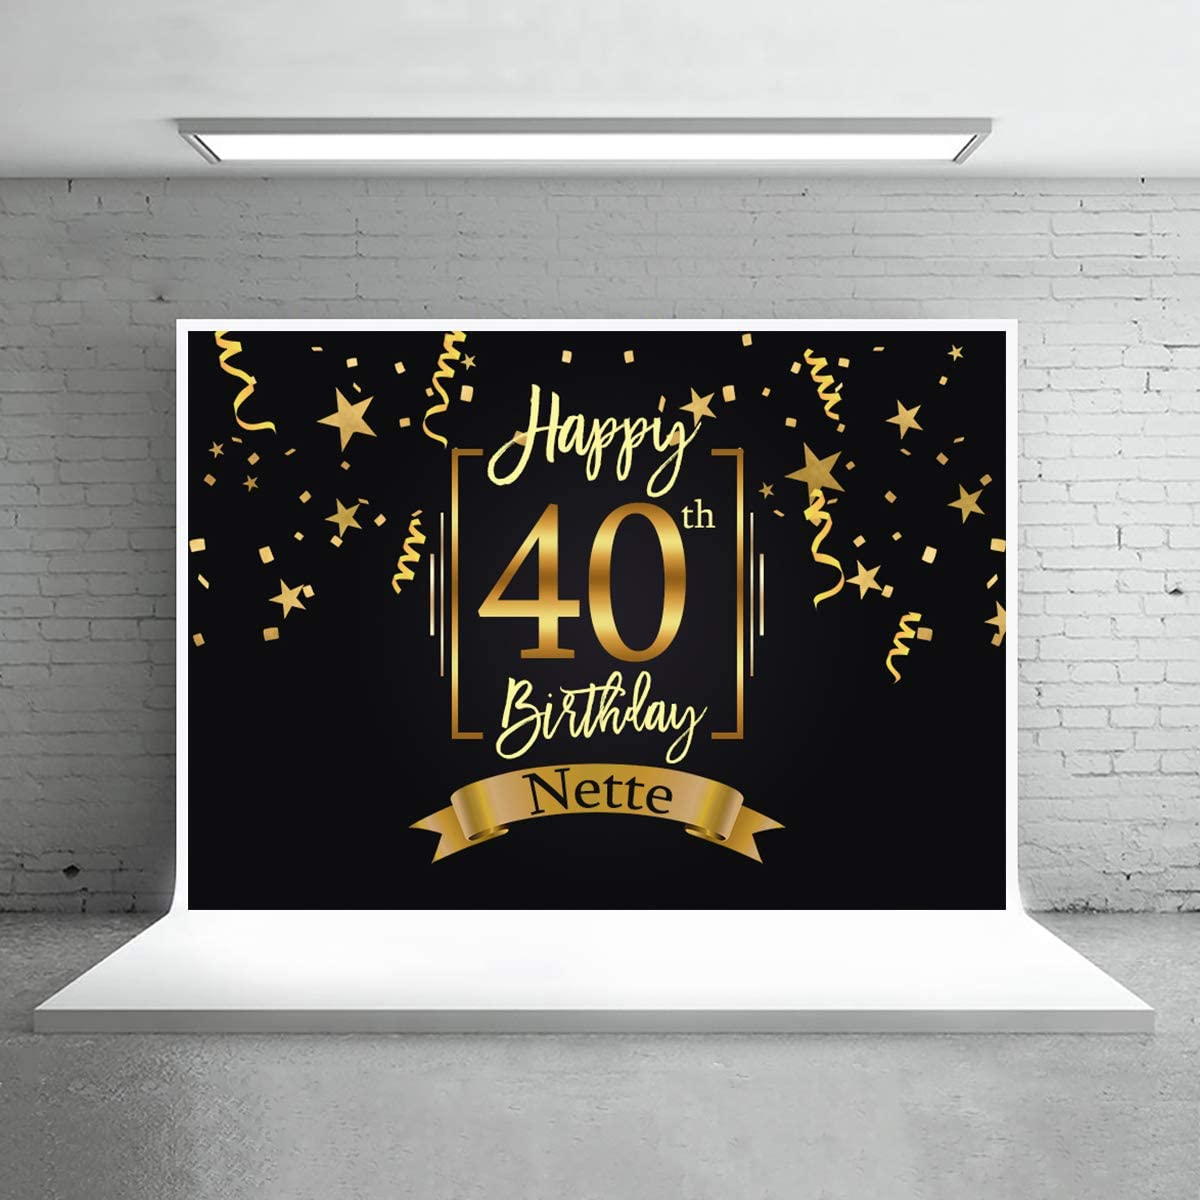 Levoo Anniversary Ceremony Background Banner Photography Studio Birthday Family Party Holiday Celebration Romantic Wedding Photography Backdrop Home Decoration Customizable Words 5x3ft,sxy1294